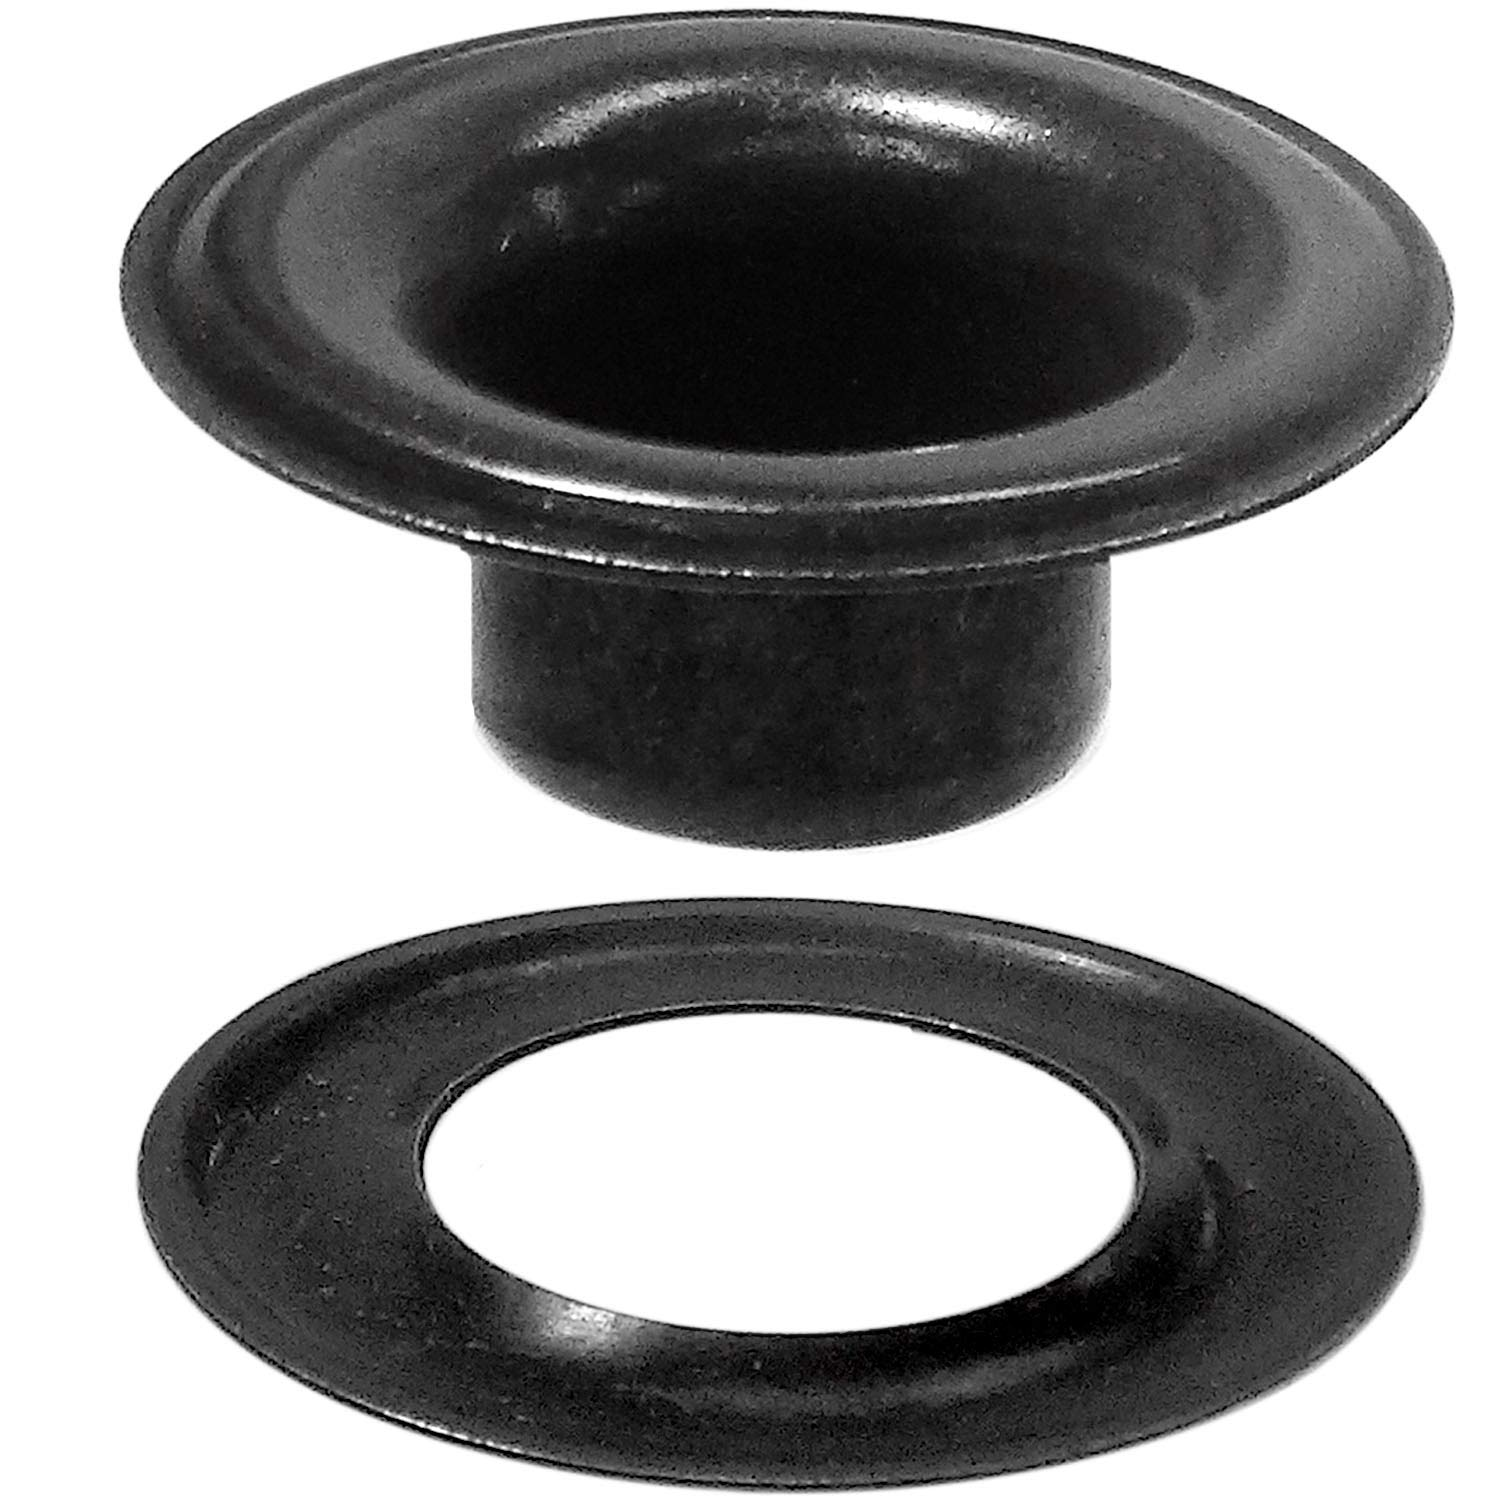 Stimpson Sheet Metal Grommet and Washer Dull Black Chem Durable, Reliable, Heavy-Duty #6 Set (144 pieces of each) by Stimpson Co., Inc. (Image #1)